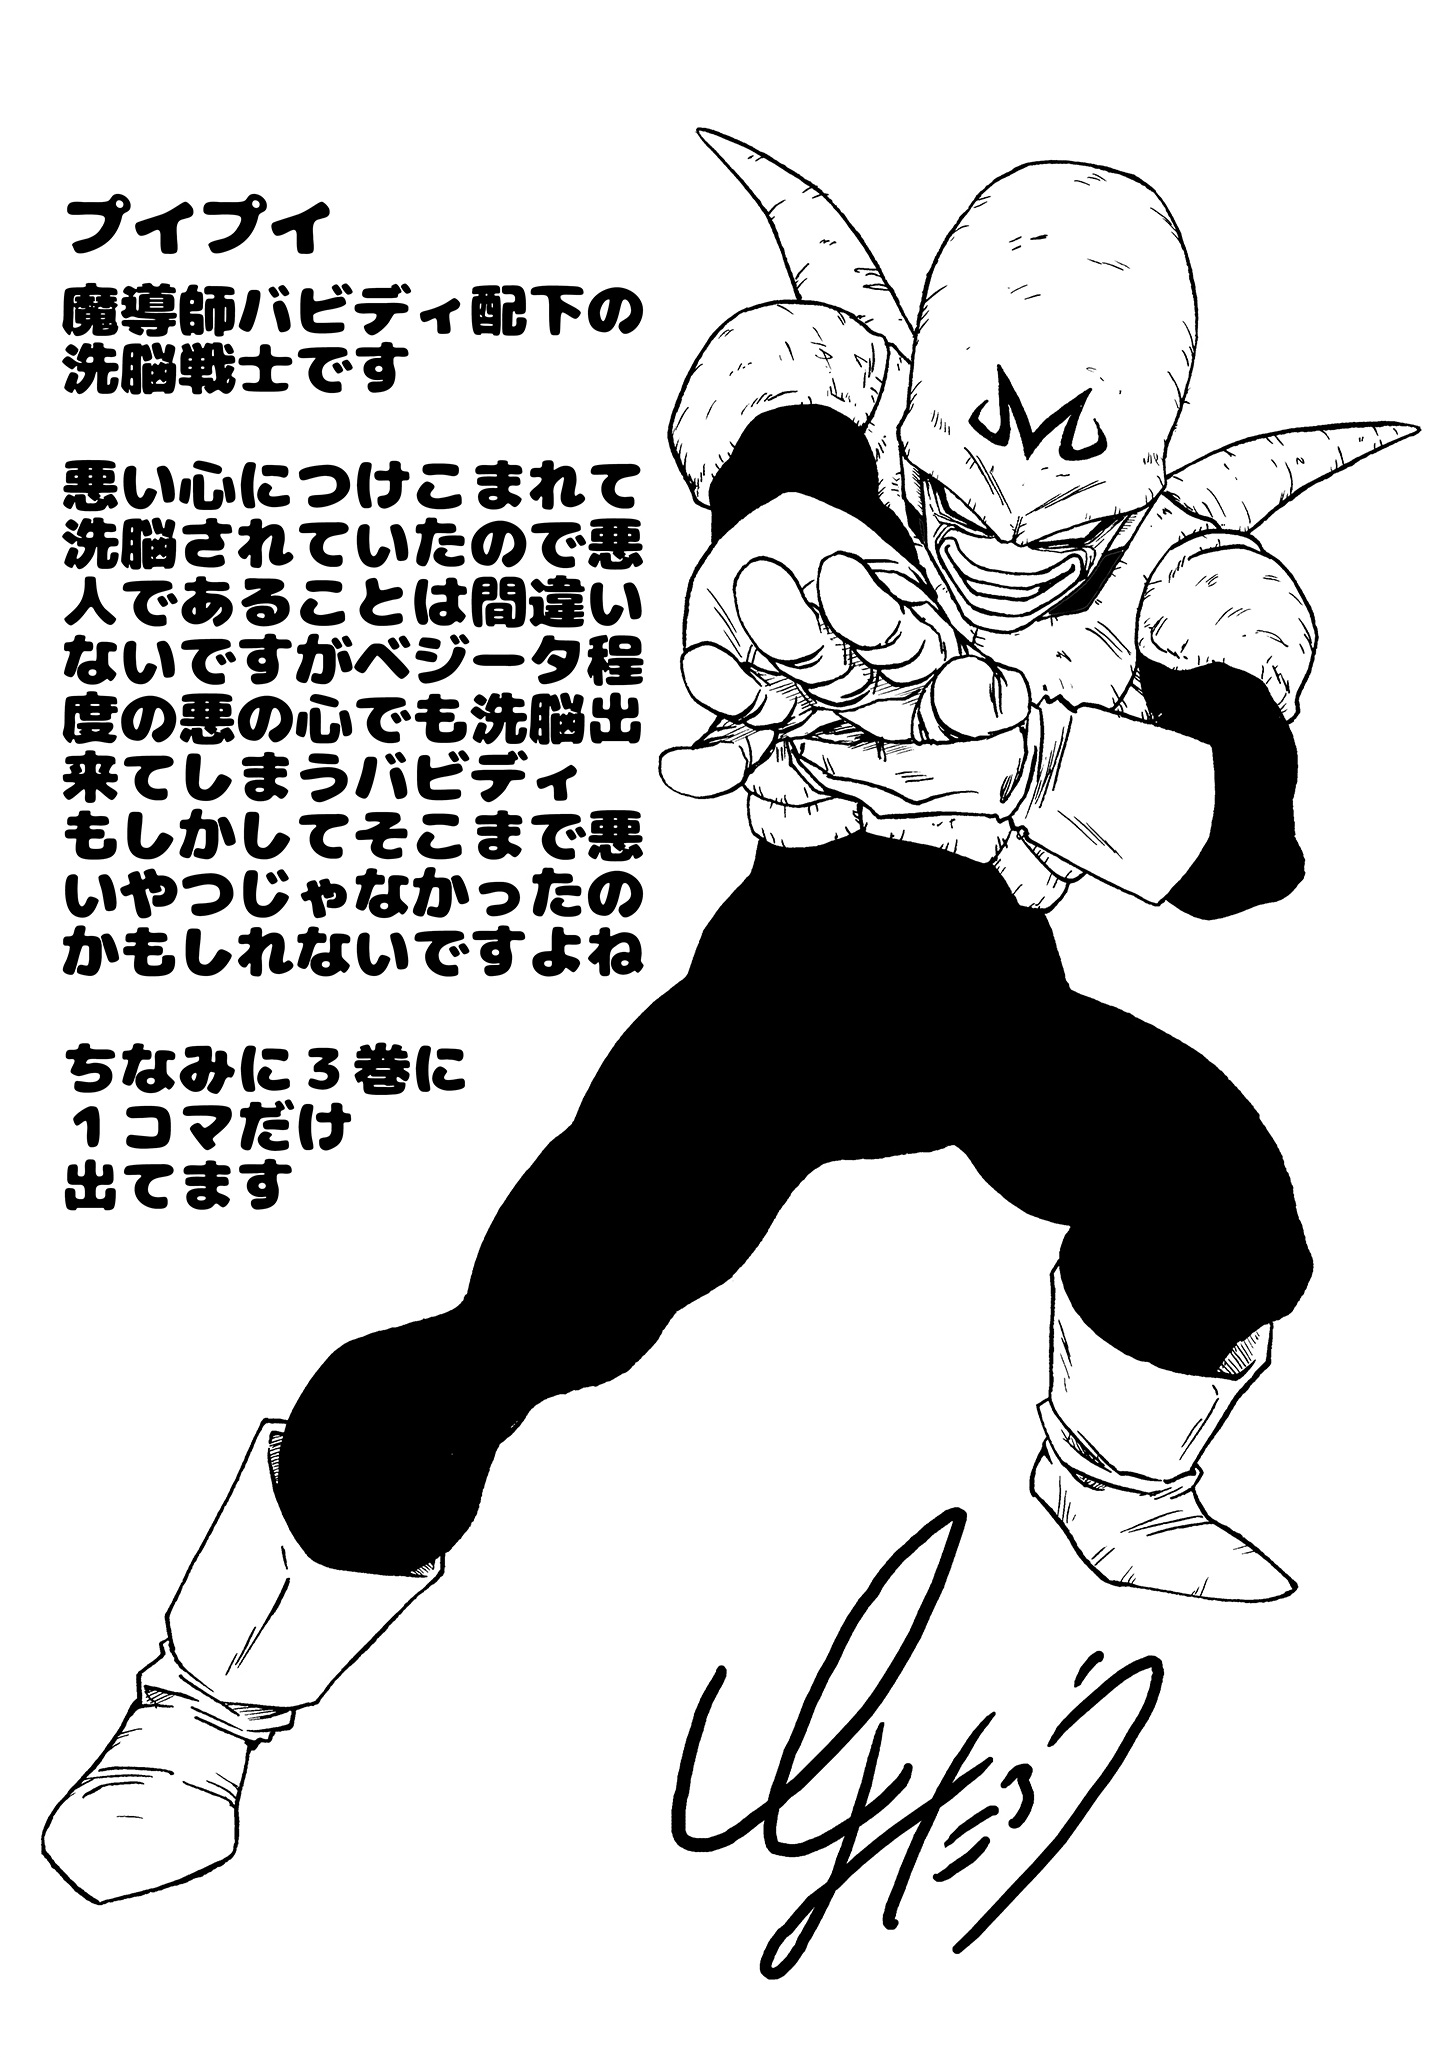 L'artwork de Toyotaro d'août 2019 pour le site officiel de Dragon Ball – Pui Pui